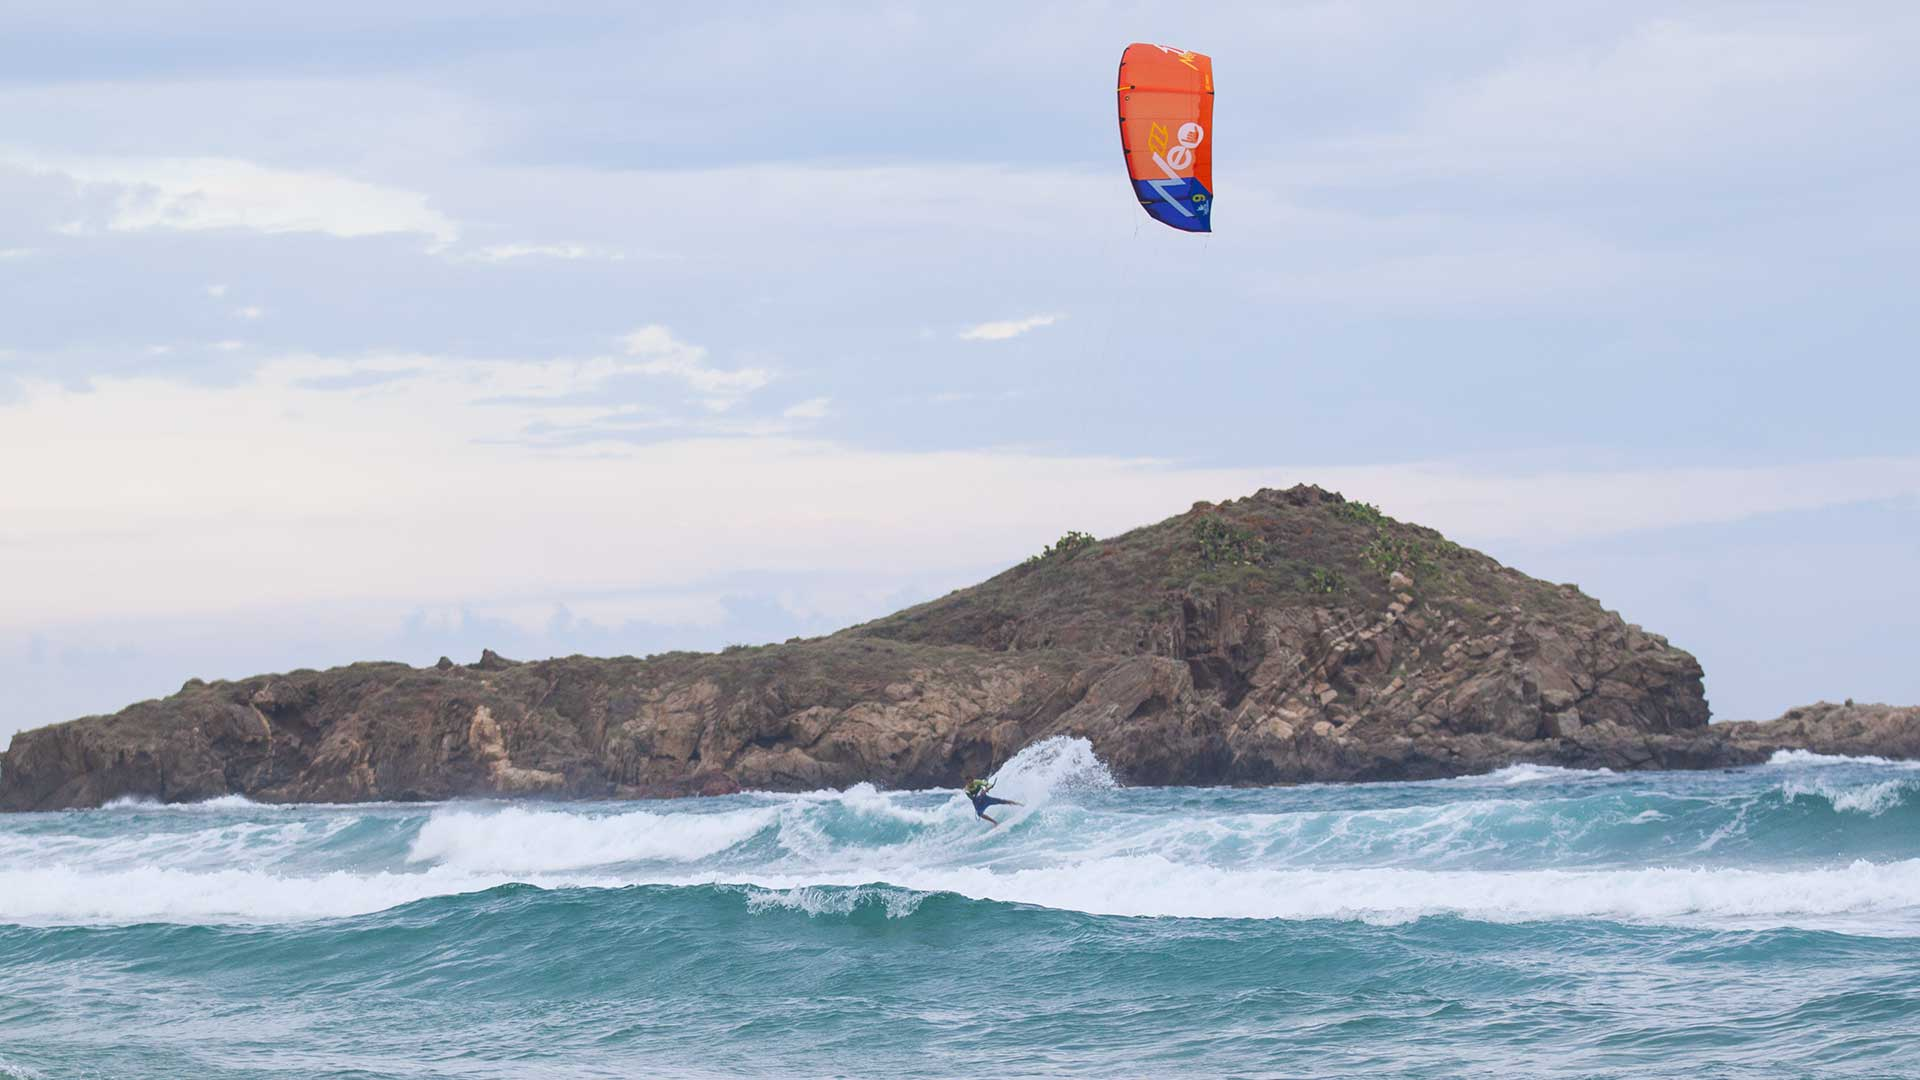 Kitesurfing Chia, Sardinia: Kite Spot of Chia in Sardinia is